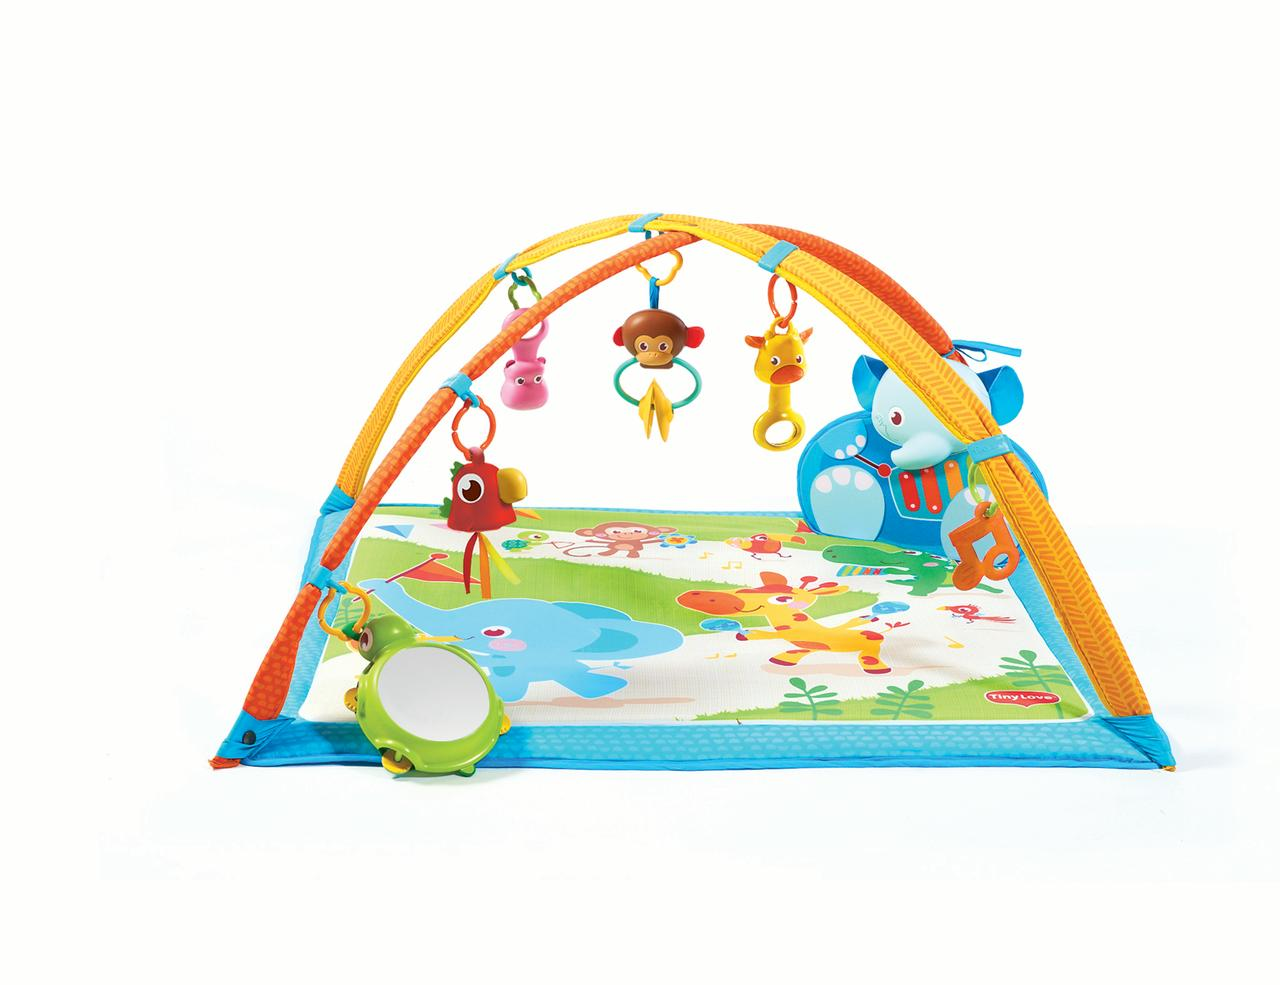 Tiny Love Gymini My Musical Friends Activity Gym Play Mat, Multiple Colors by Tiny Love